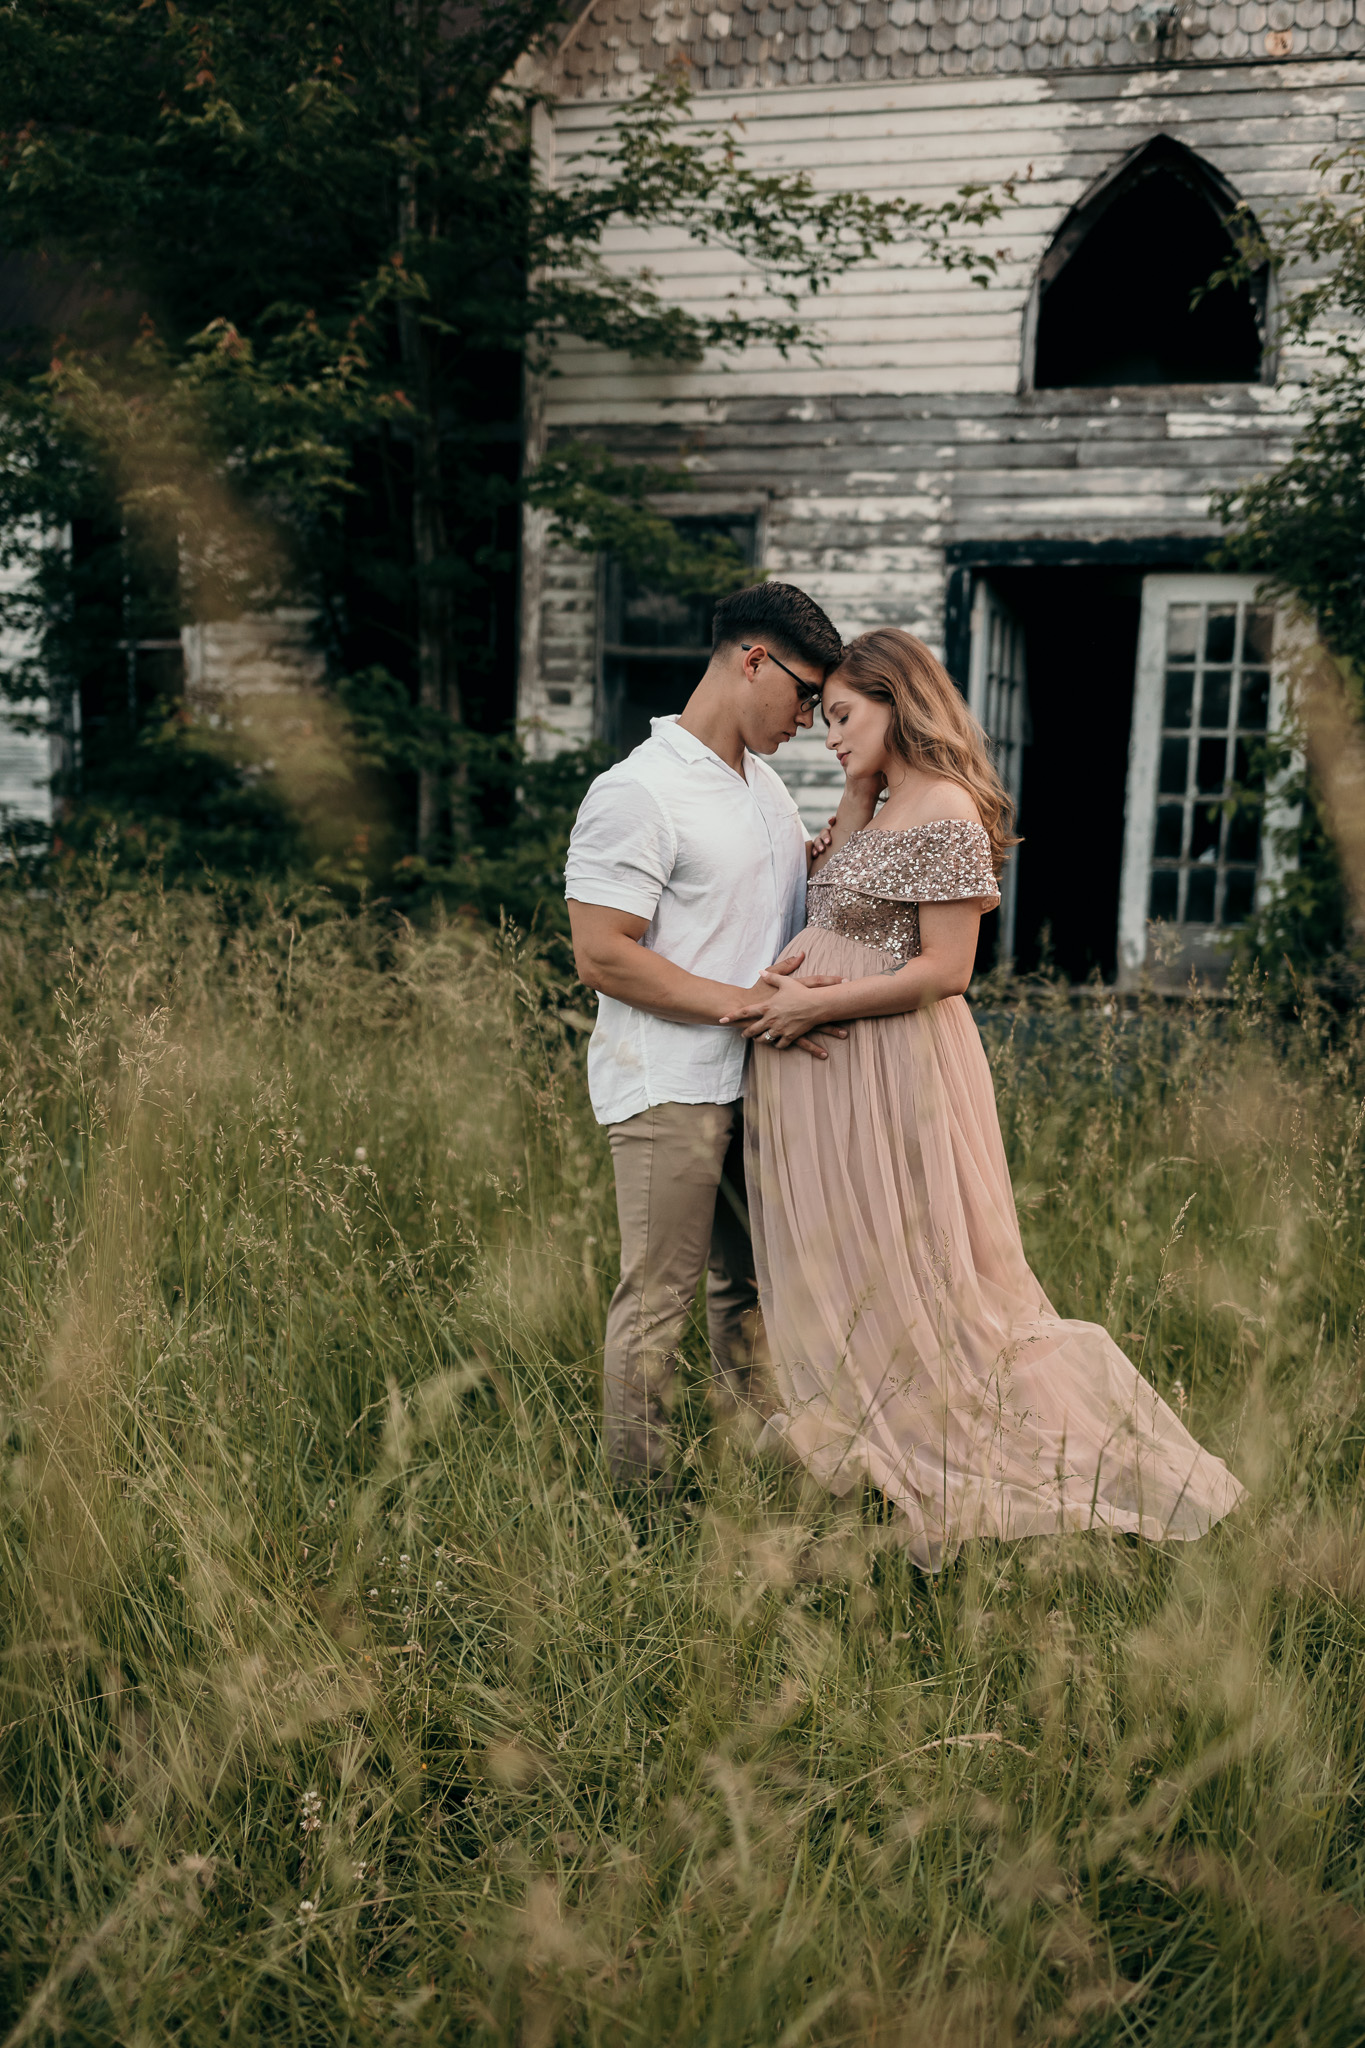 man and woman embracing for maternity photos